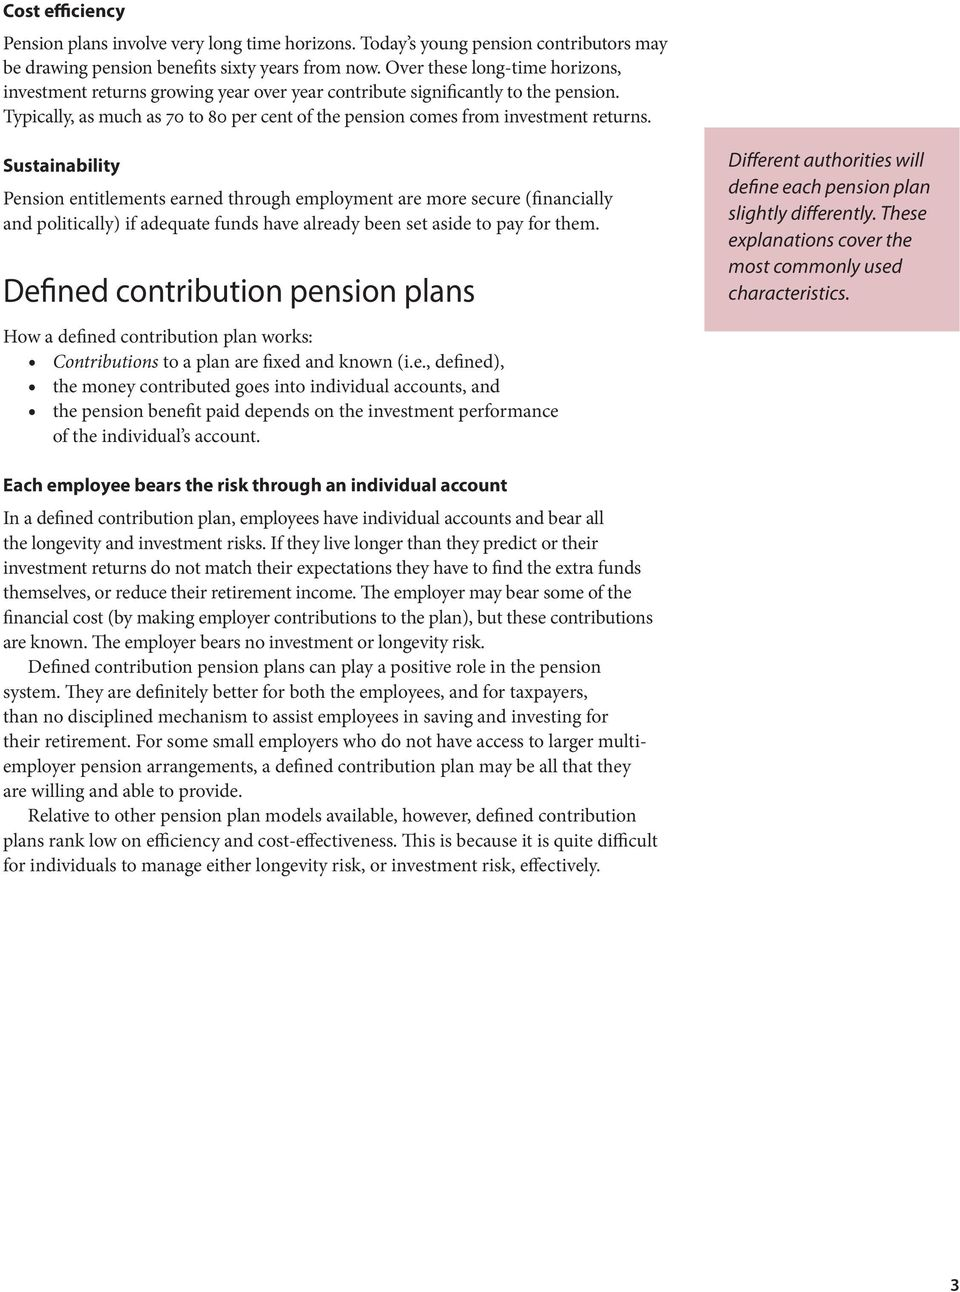 Sustainability Pension entitlements earned through employment are more secure (financially and politically) if adequate funds have already been set aside to pay for them.